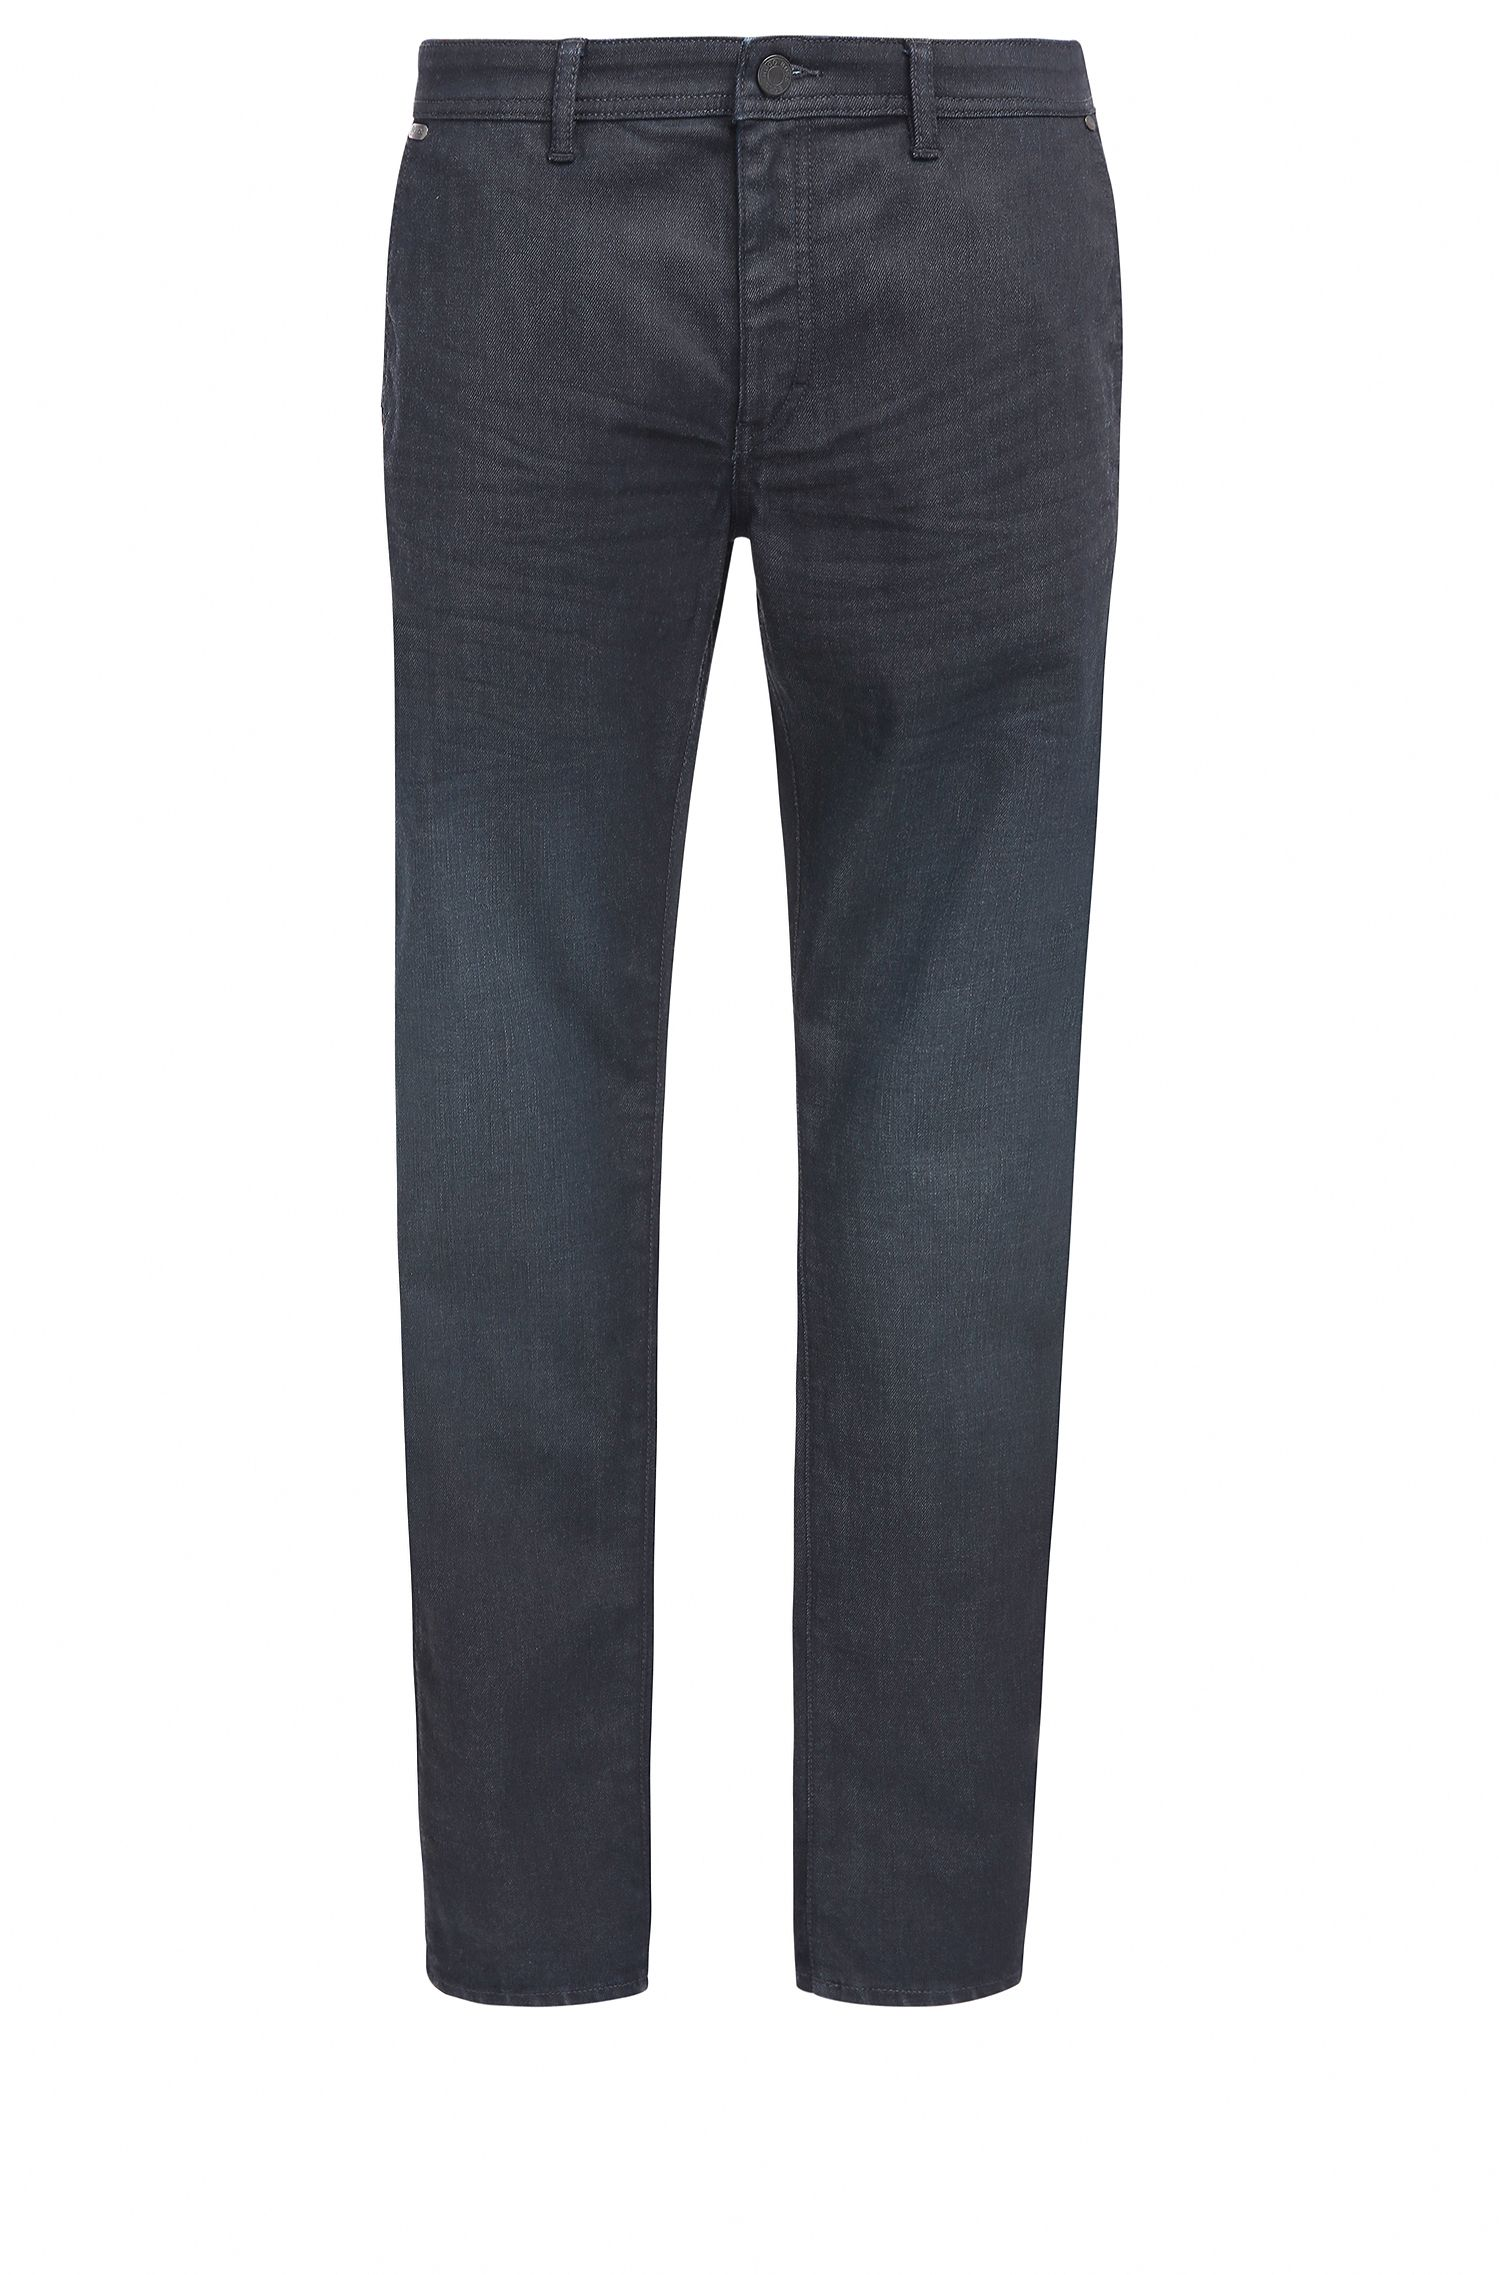 Tapered-fit jeans in comfort-stretch denim